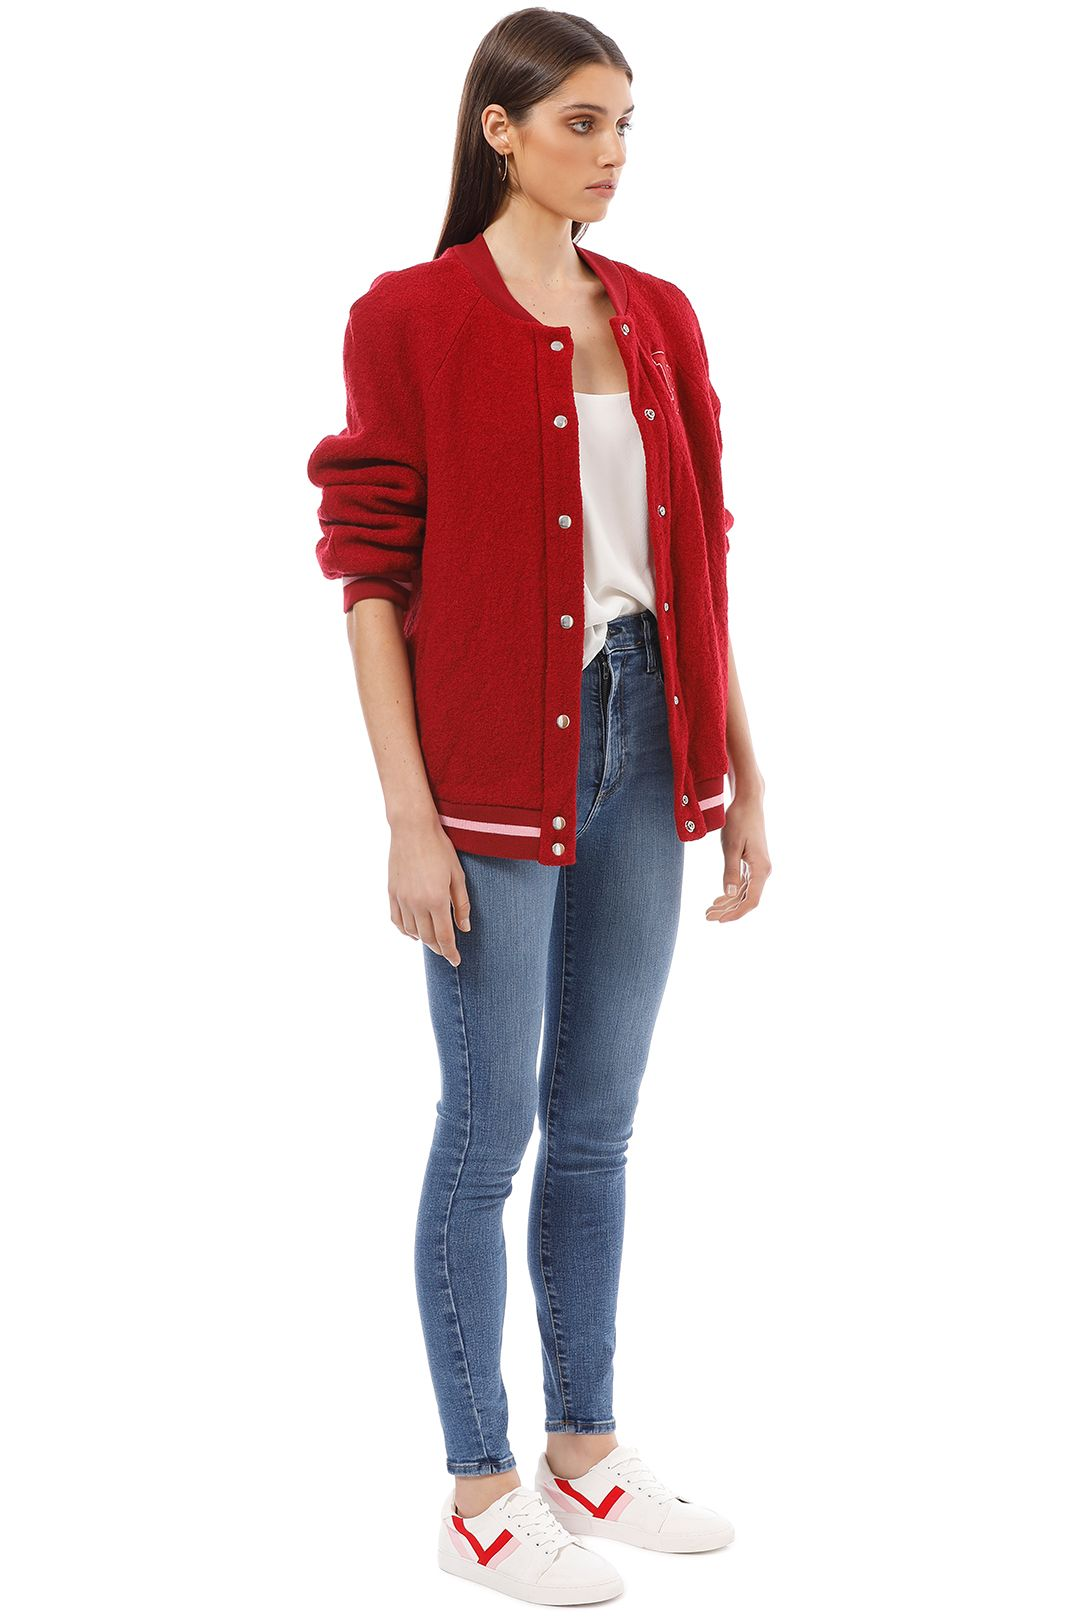 Bec and Bridge - Be Mine Bomber - Red - Side